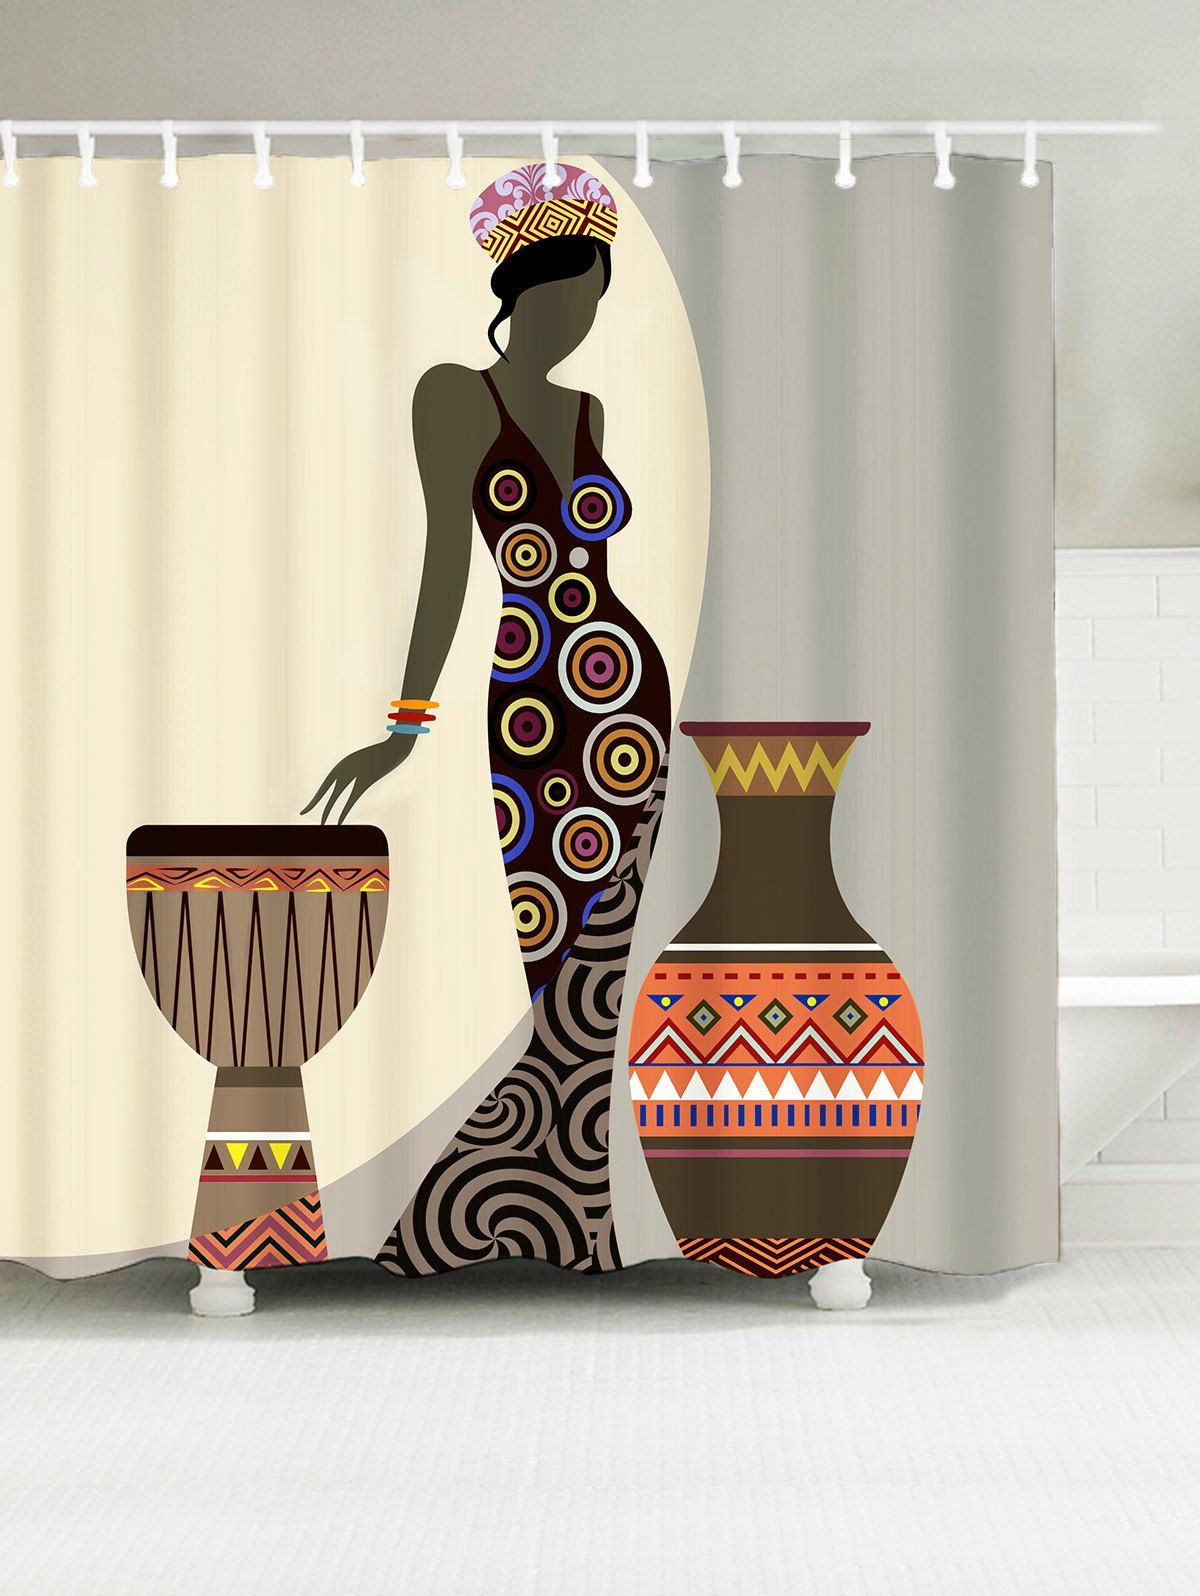 Beauty Geometric Waterproof African Shower Curtain 21 10 Usd African Shower Curtain Afrocentric Decor African Decor